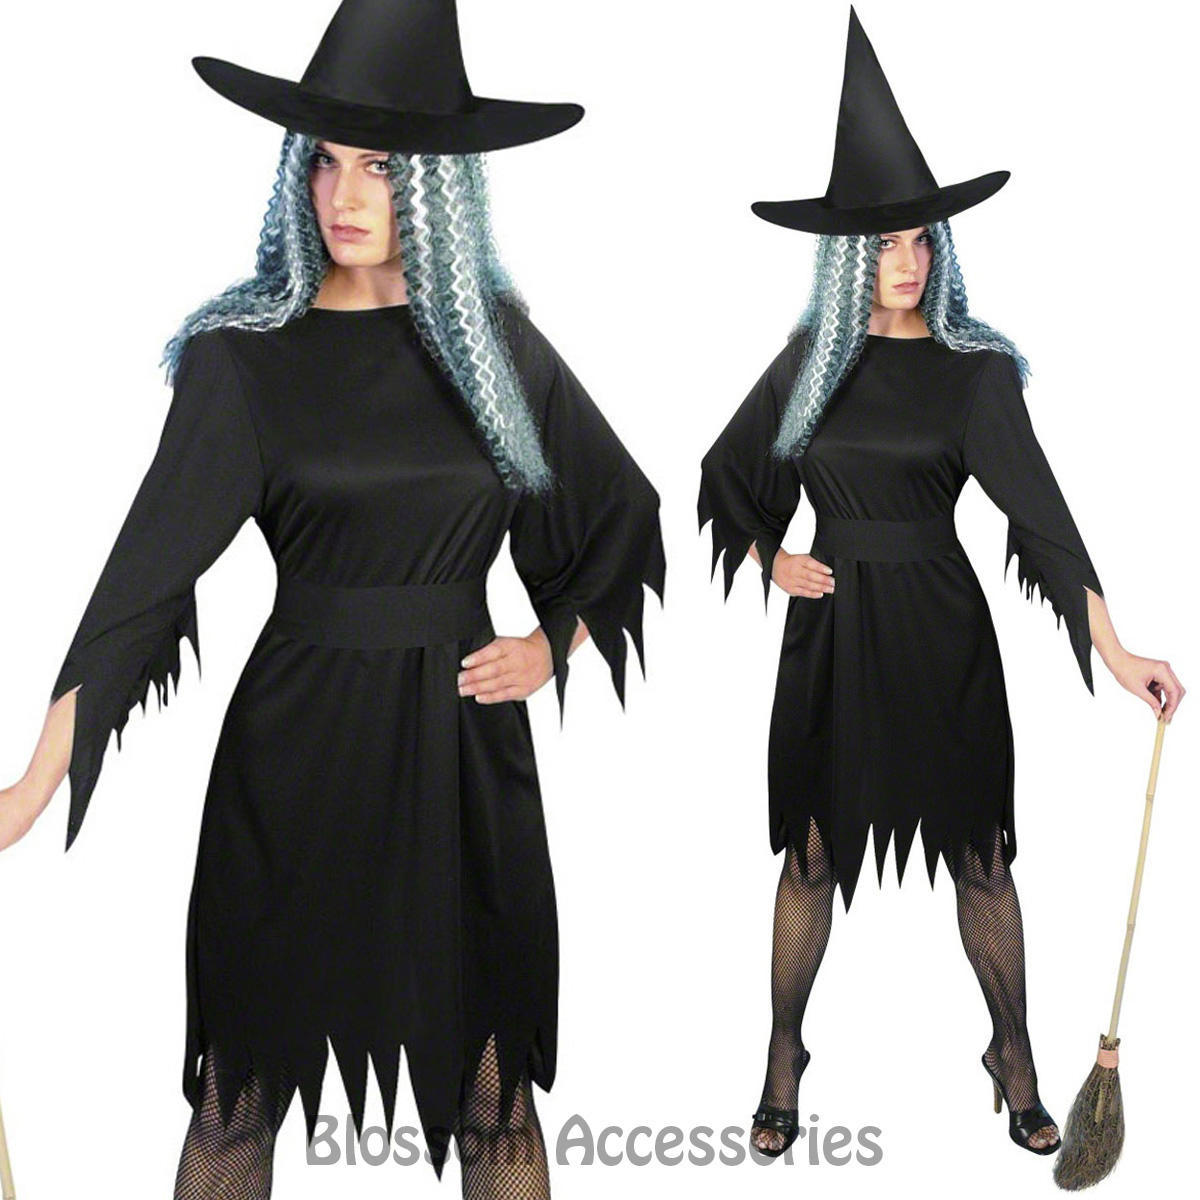 CL572 Womens Spooky Wicked Witch Gothic Halloween Horror